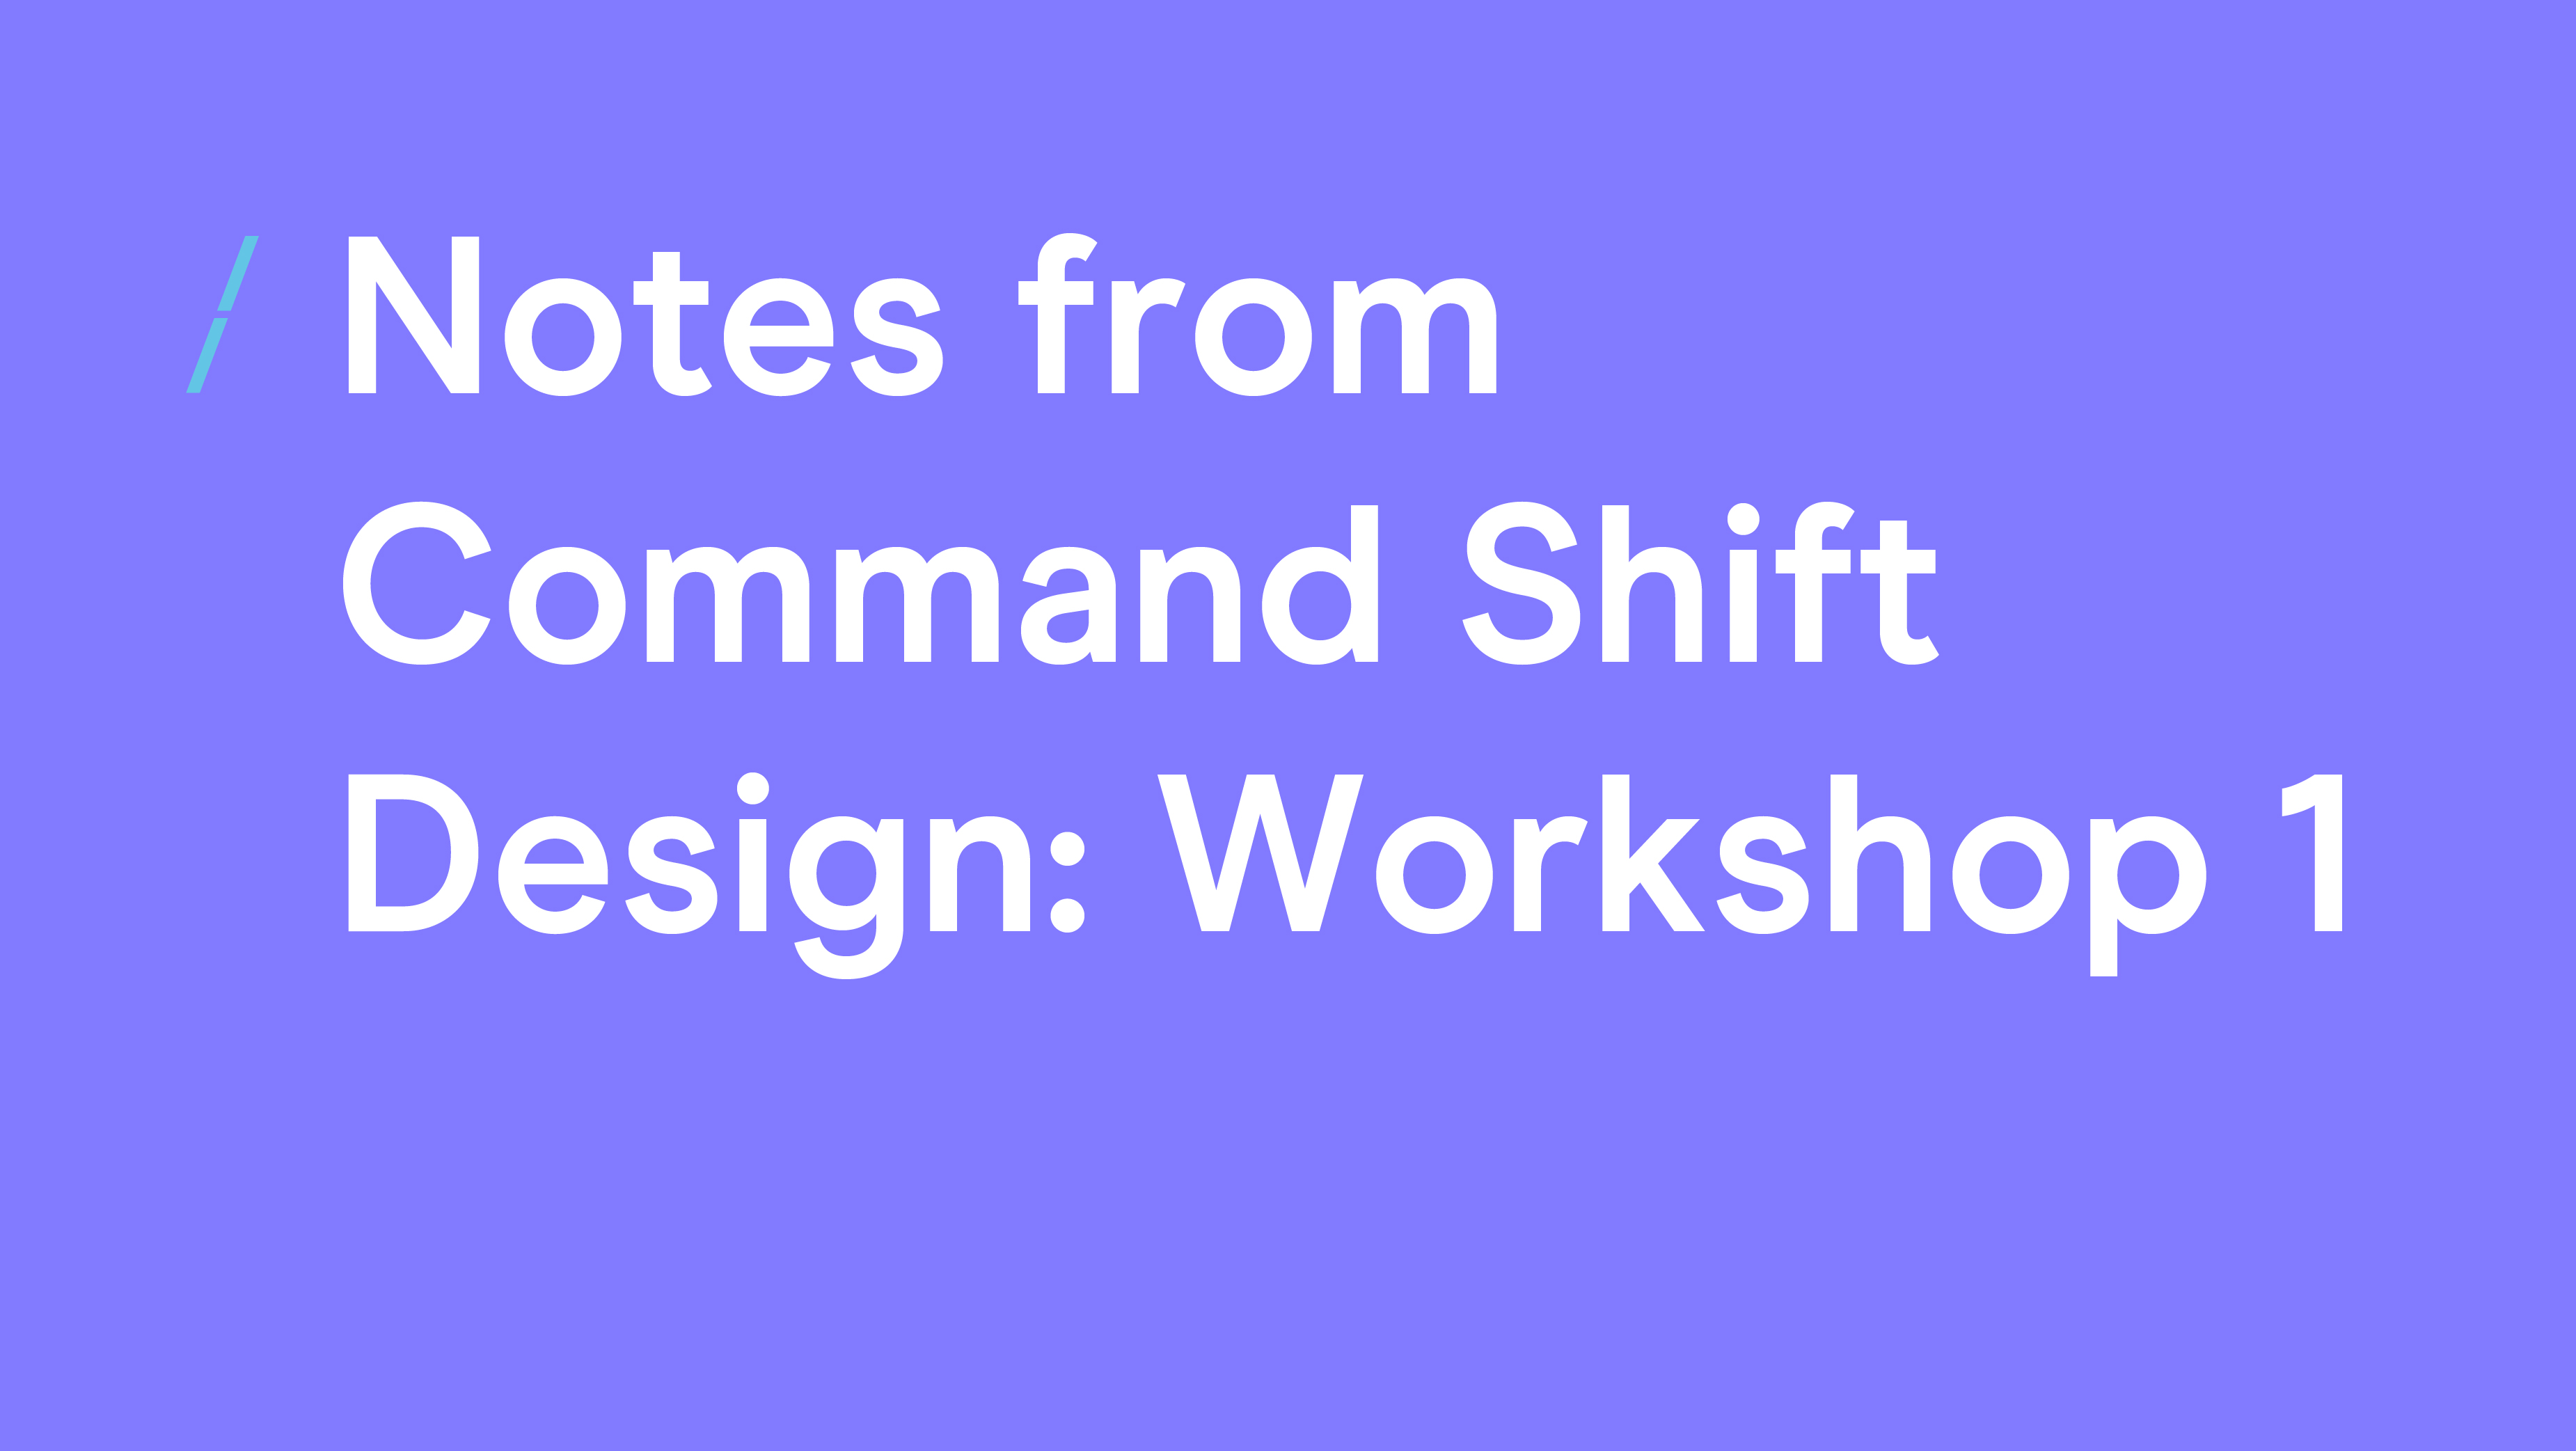 Notes from Command shift.jpg